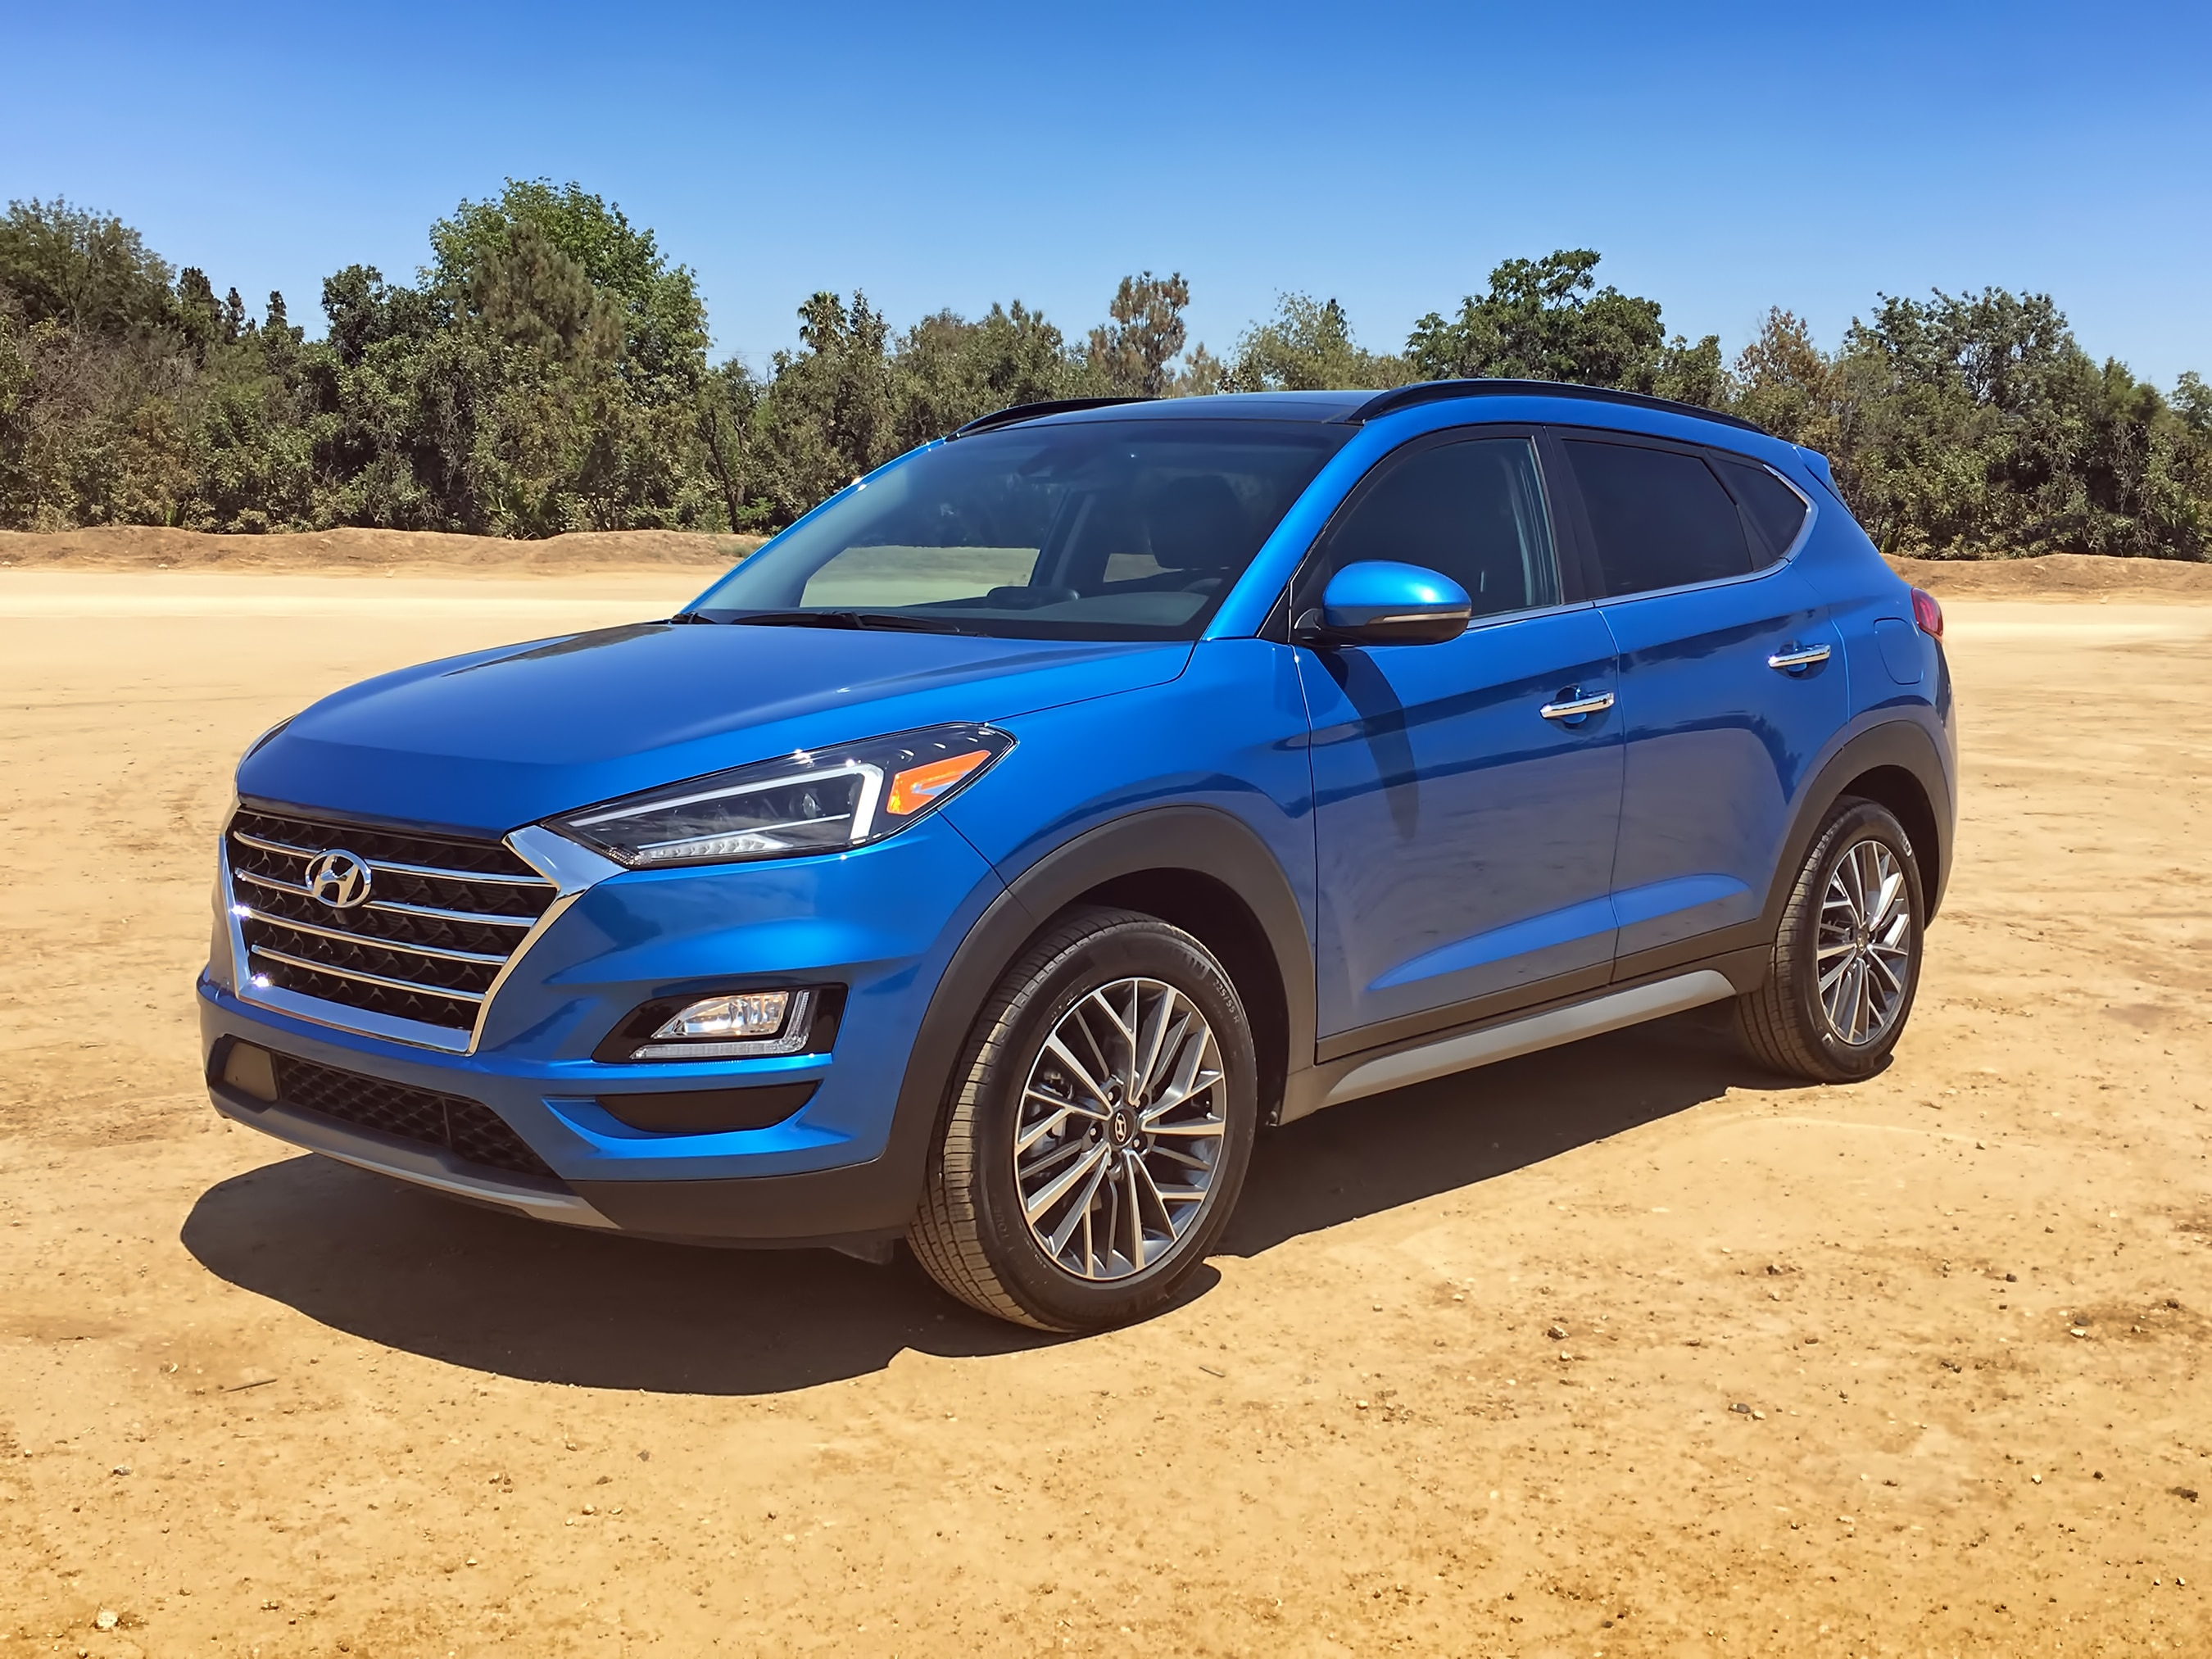 2019 Hyundai Tucson Ultimate Review: It's Ultimate Alright ...